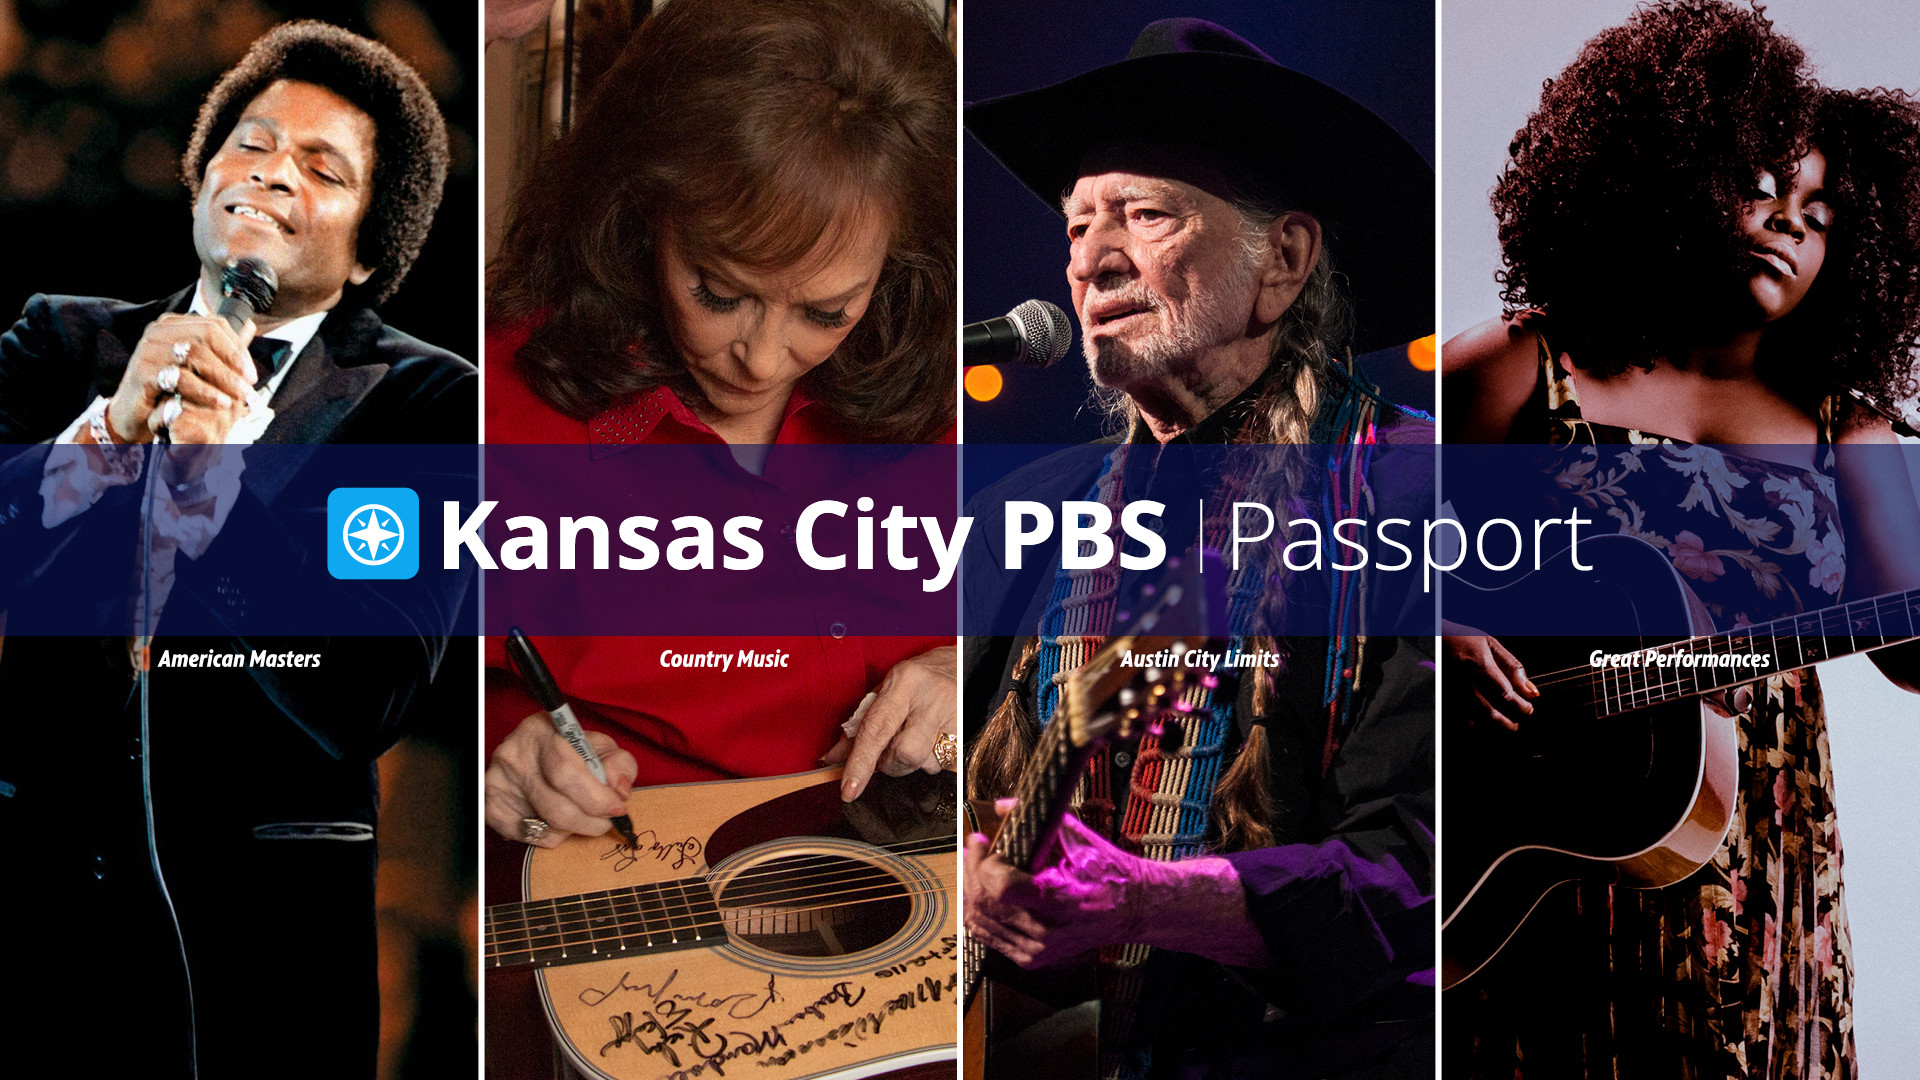 Kansas City PBS Passport